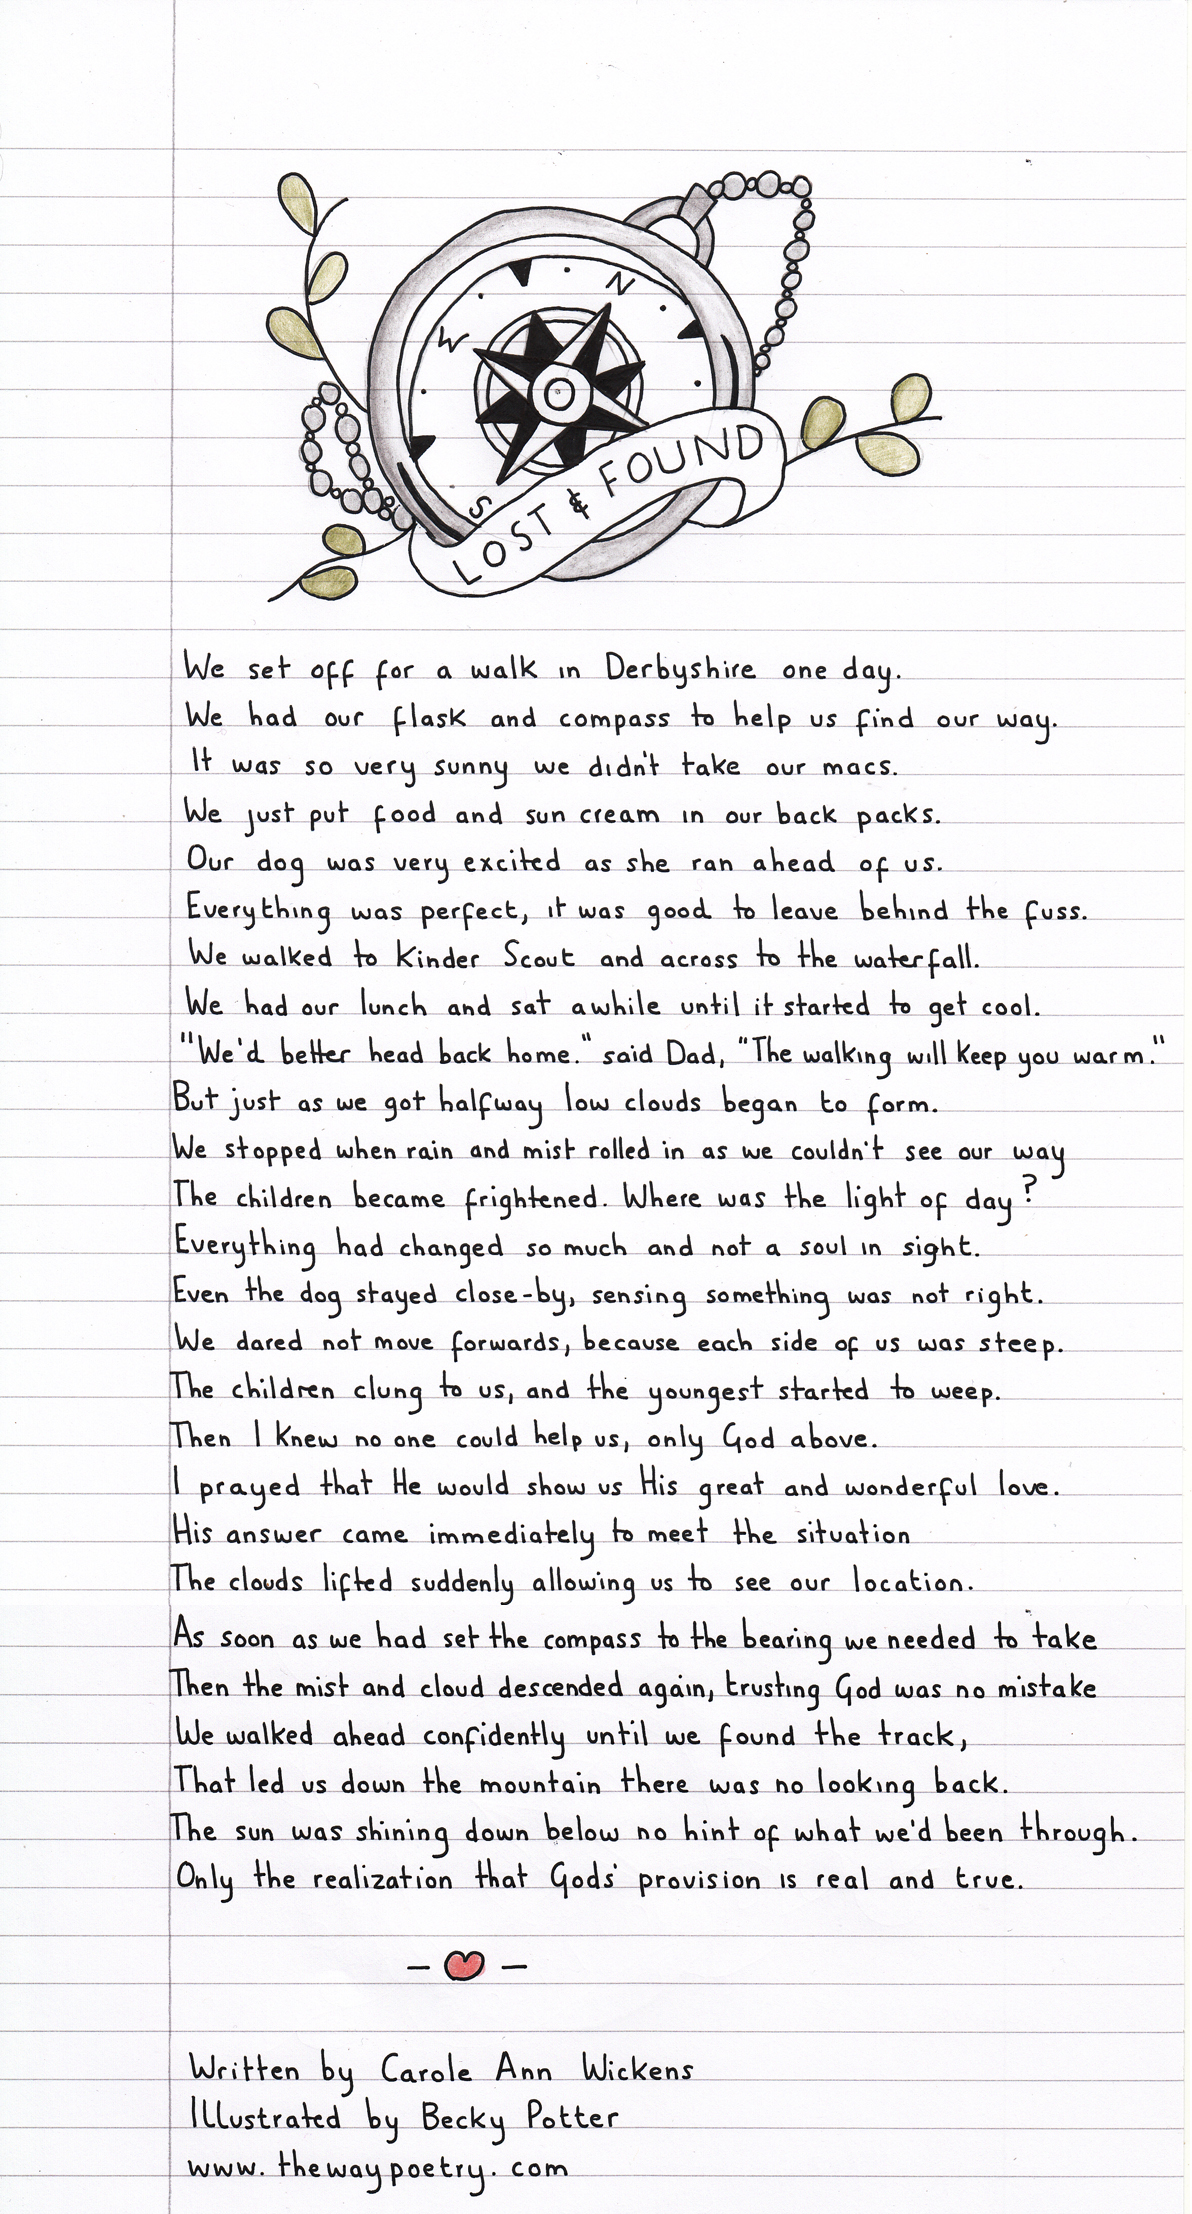 Lost & Found by Carole Ann Wickens